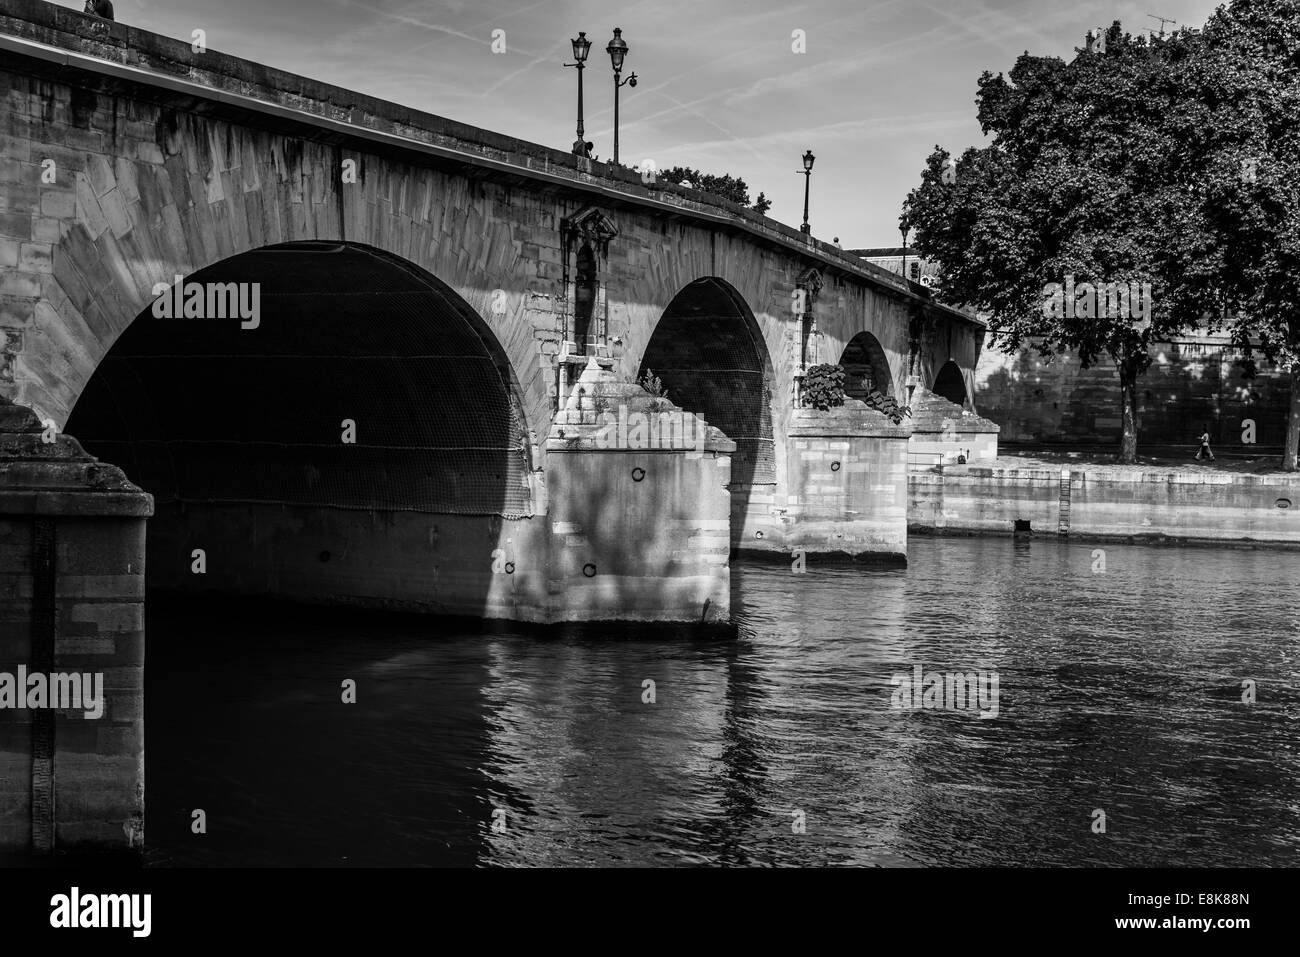 Pont Marie in Paris France carries traffic over the River Seine at Ile St. Louis - Stock Image